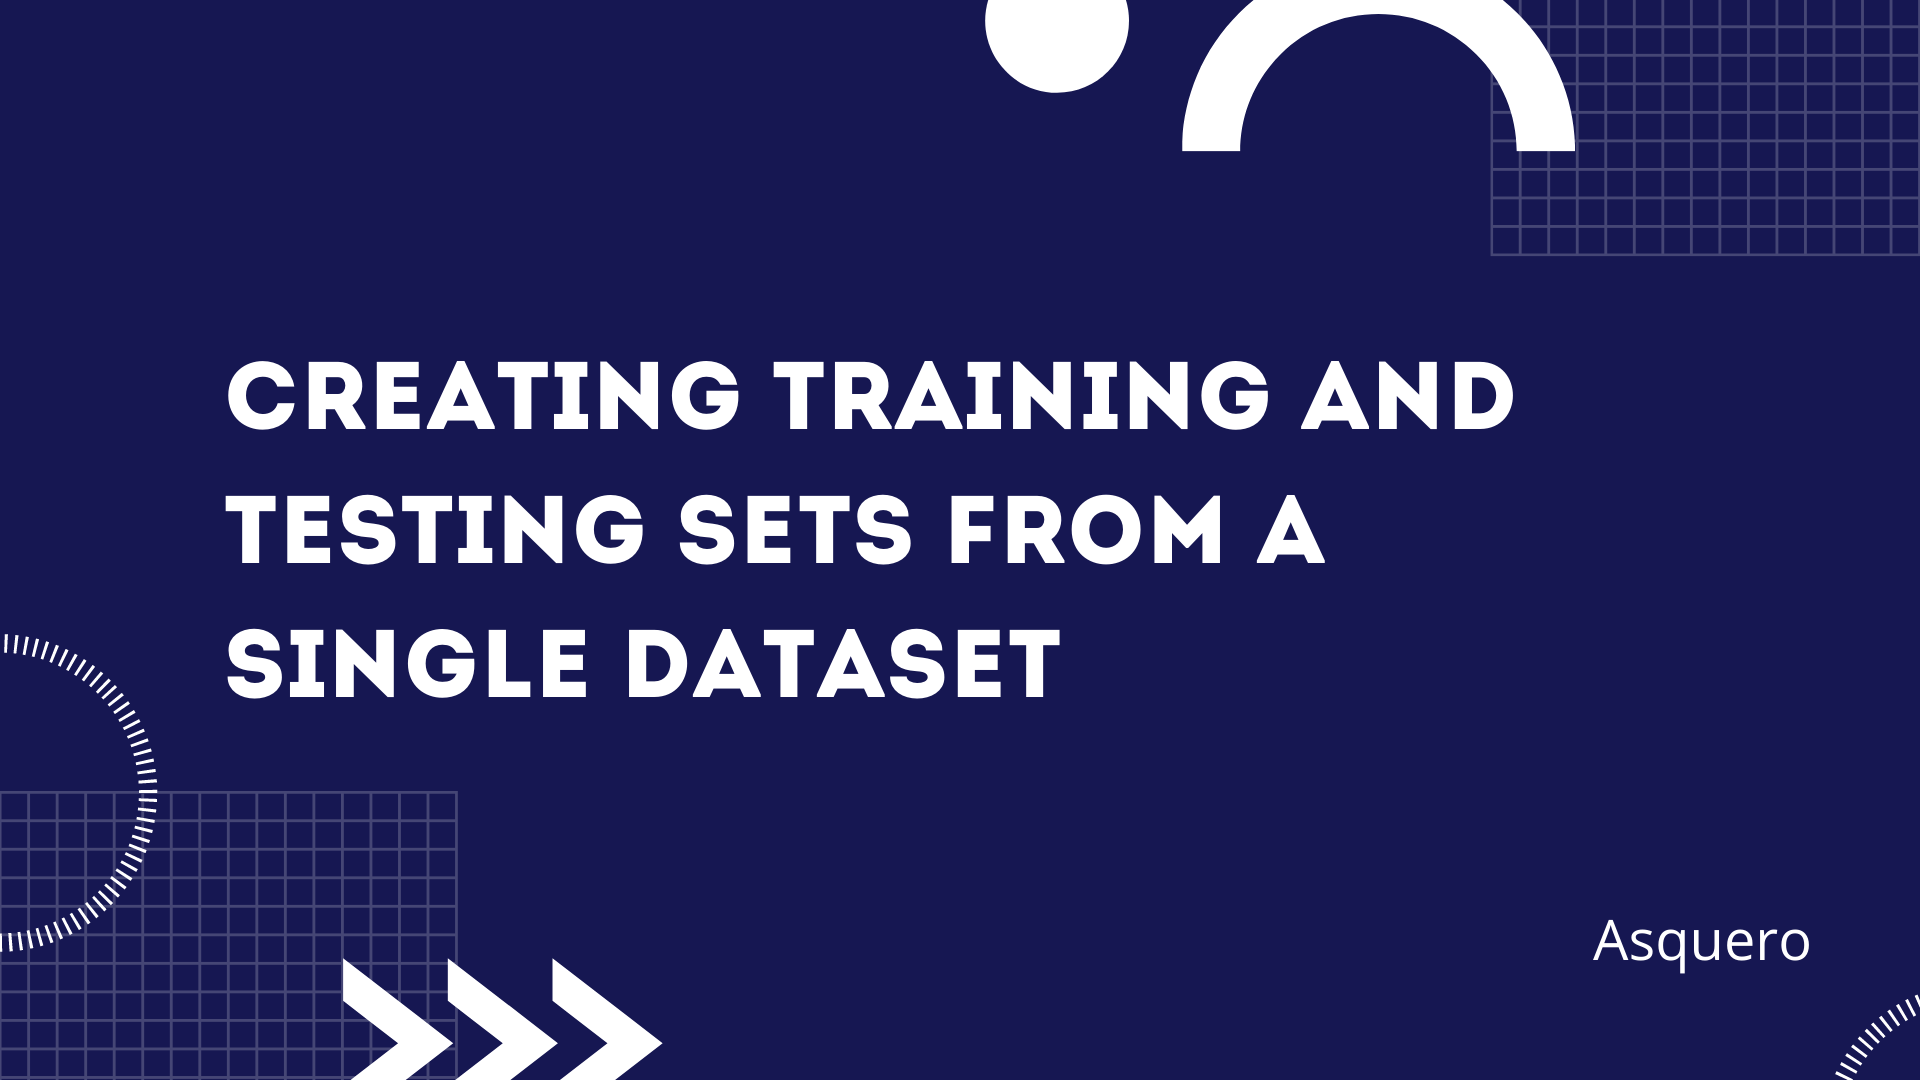 Creating training and testing sets from a single dataset